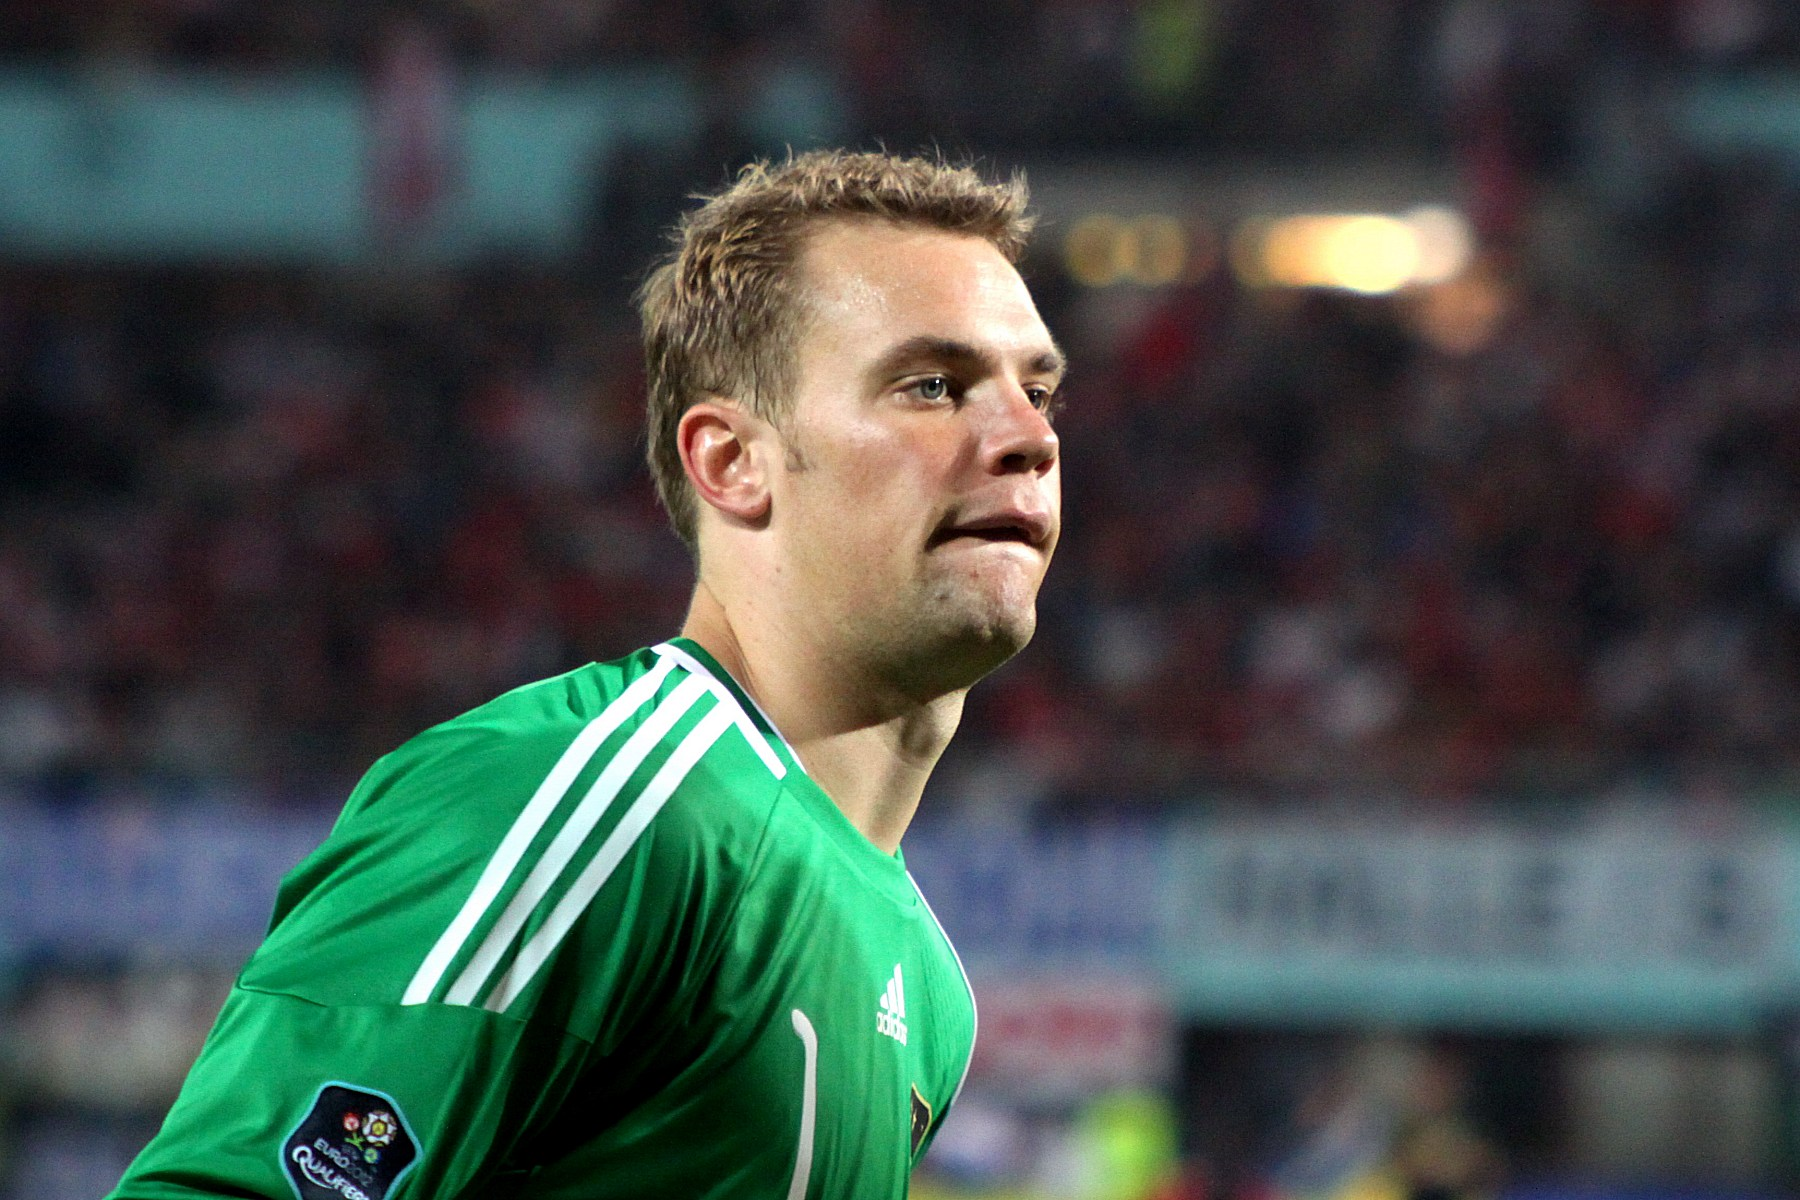 Manuel_Neuer,_Germany_national_football_team_(08)